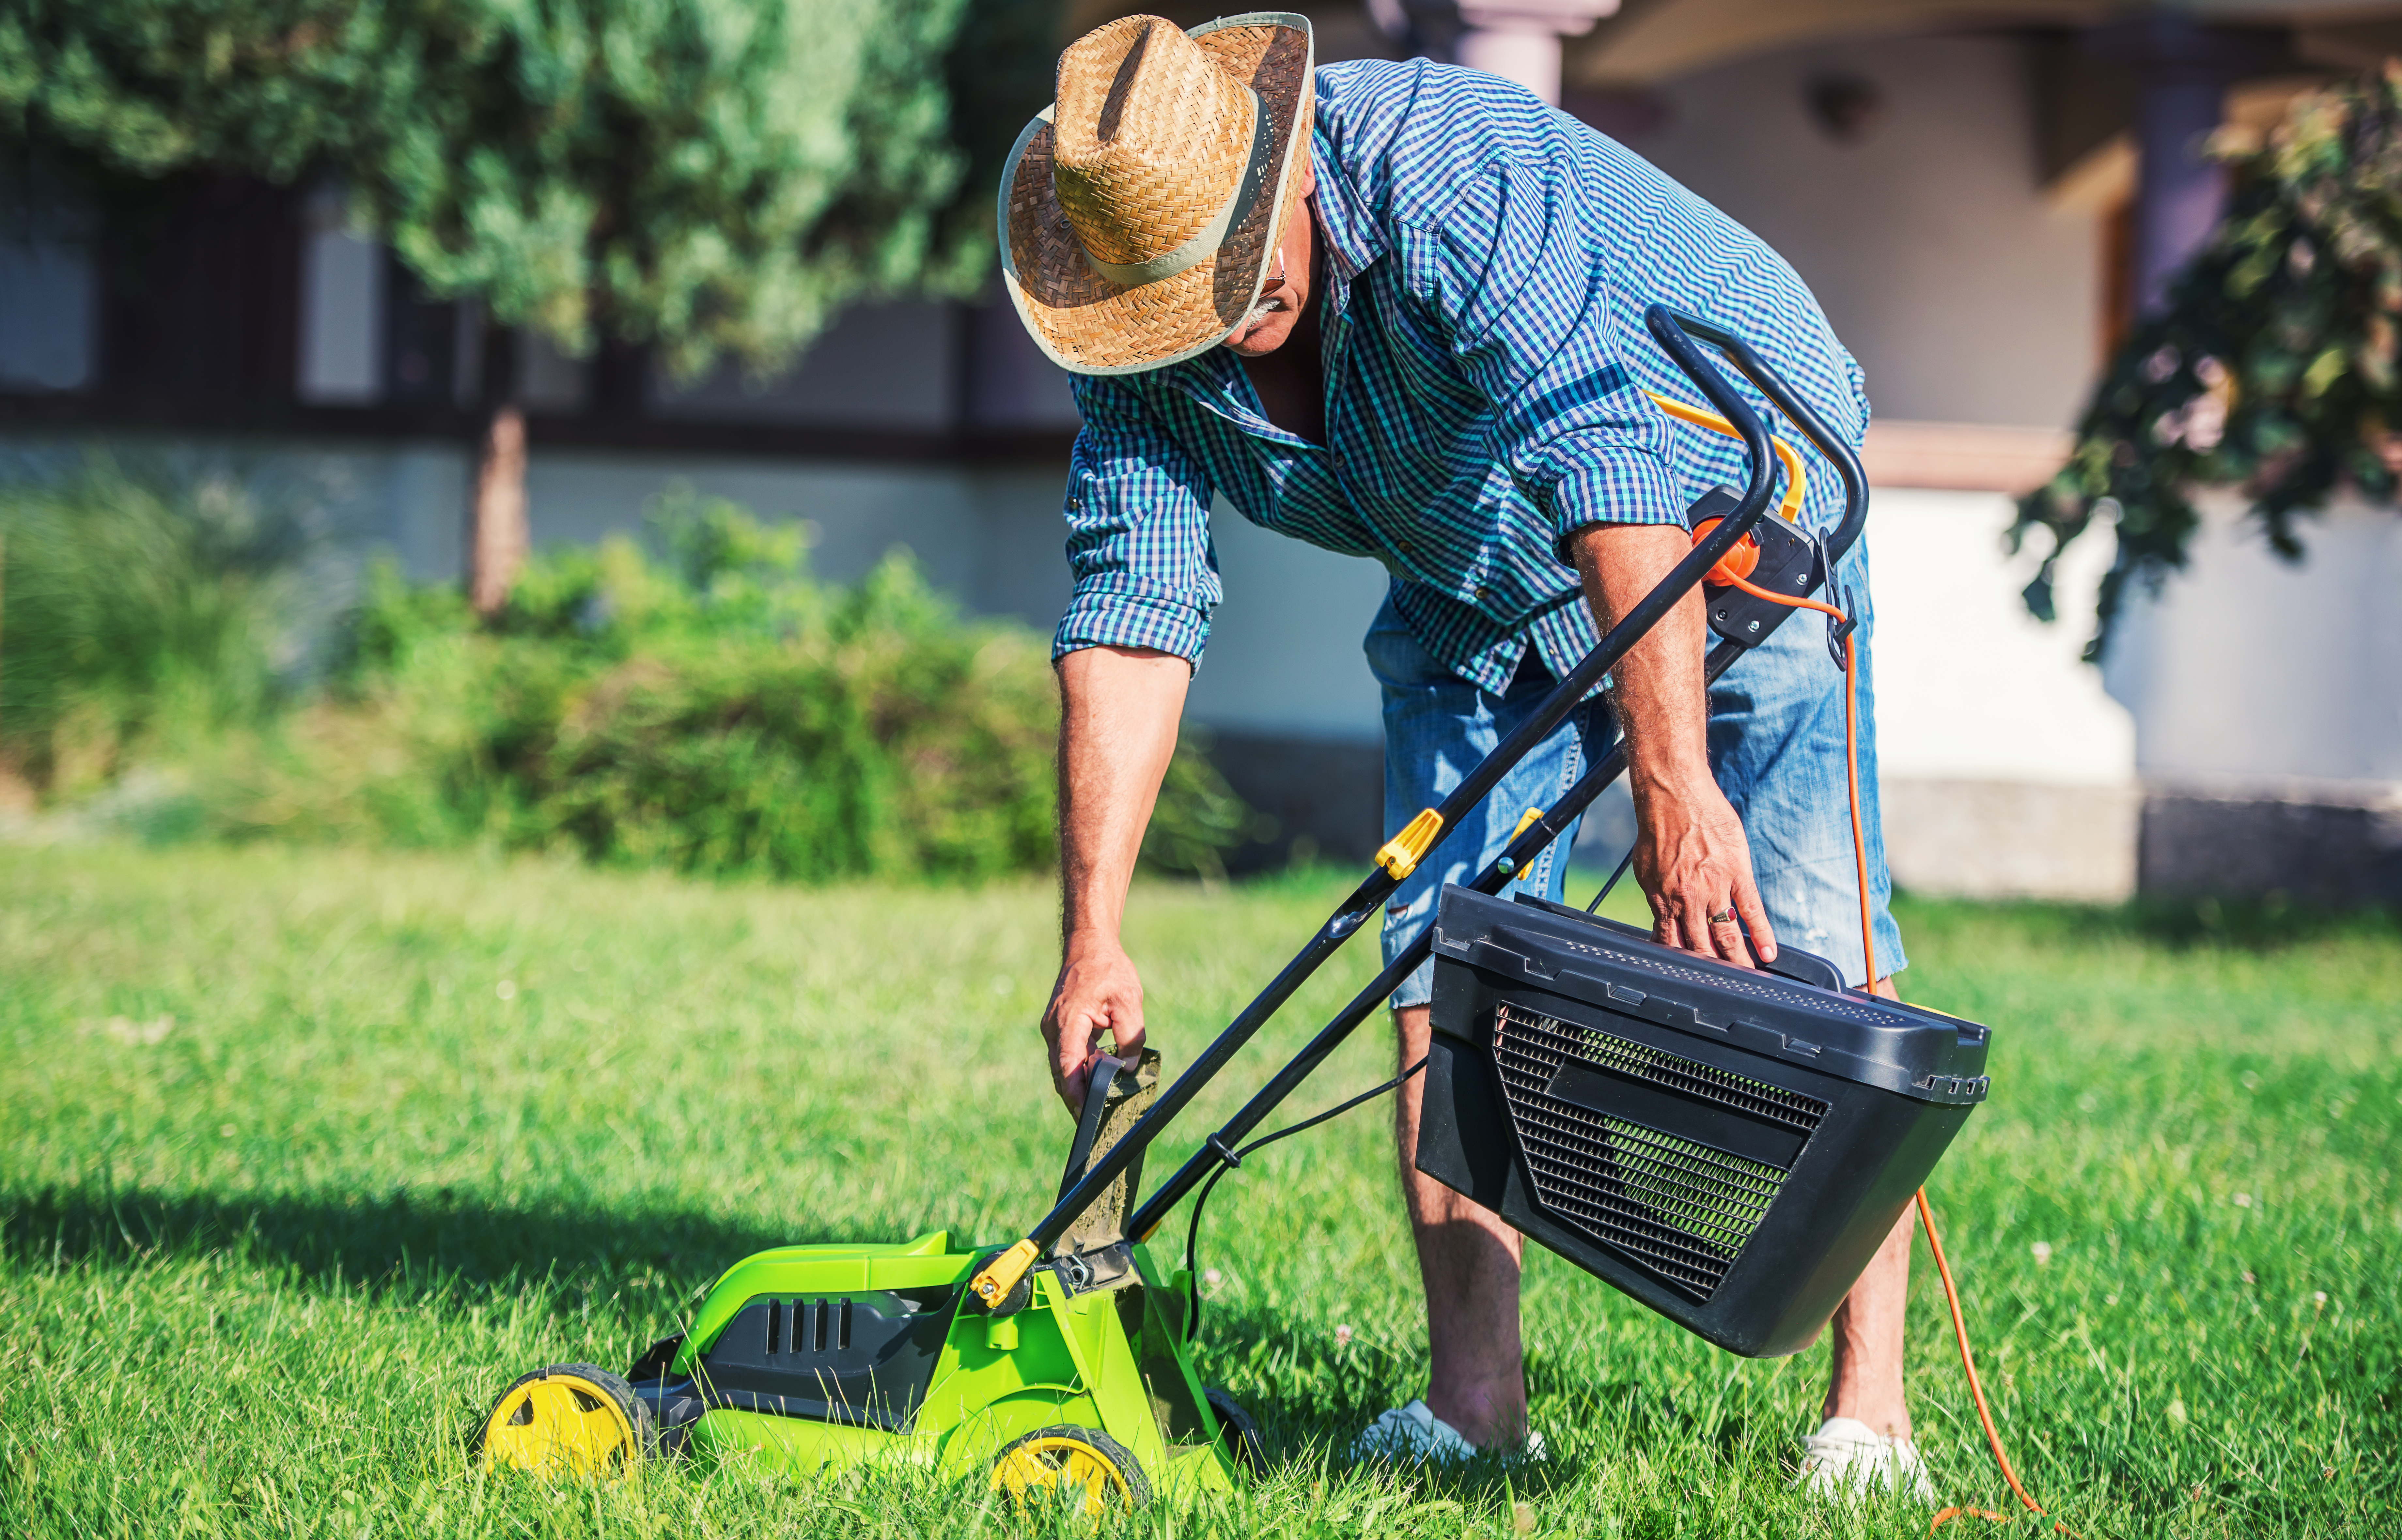 Why Does My Lawn Mower Sound Like it Is Surging? | Home